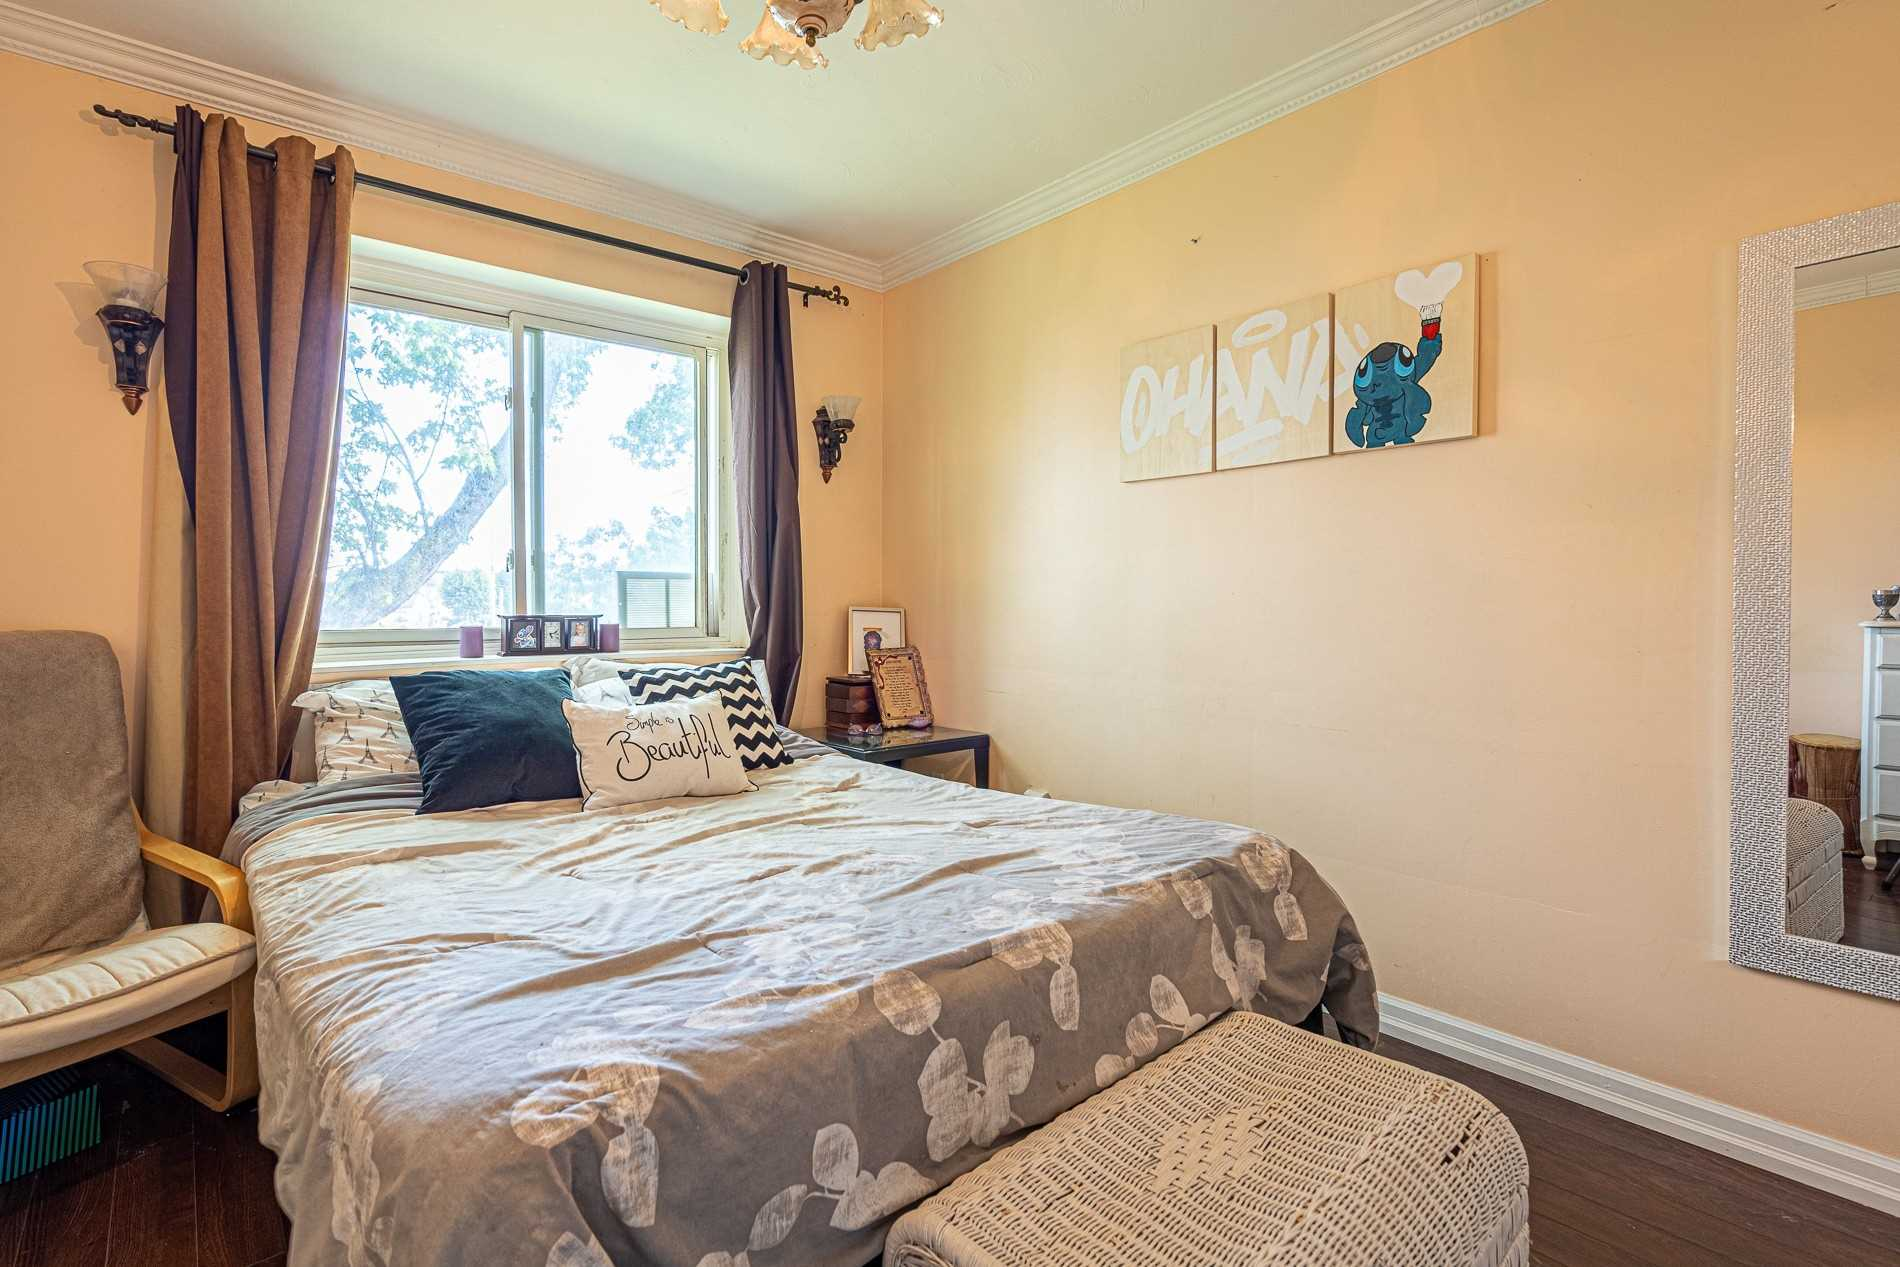 Image 12 of 13 showing inside of 2 Bedroom Condo Apt Apartment for Sale at 456 Carlton St Unit# 26, St. Catharines L2M4X1